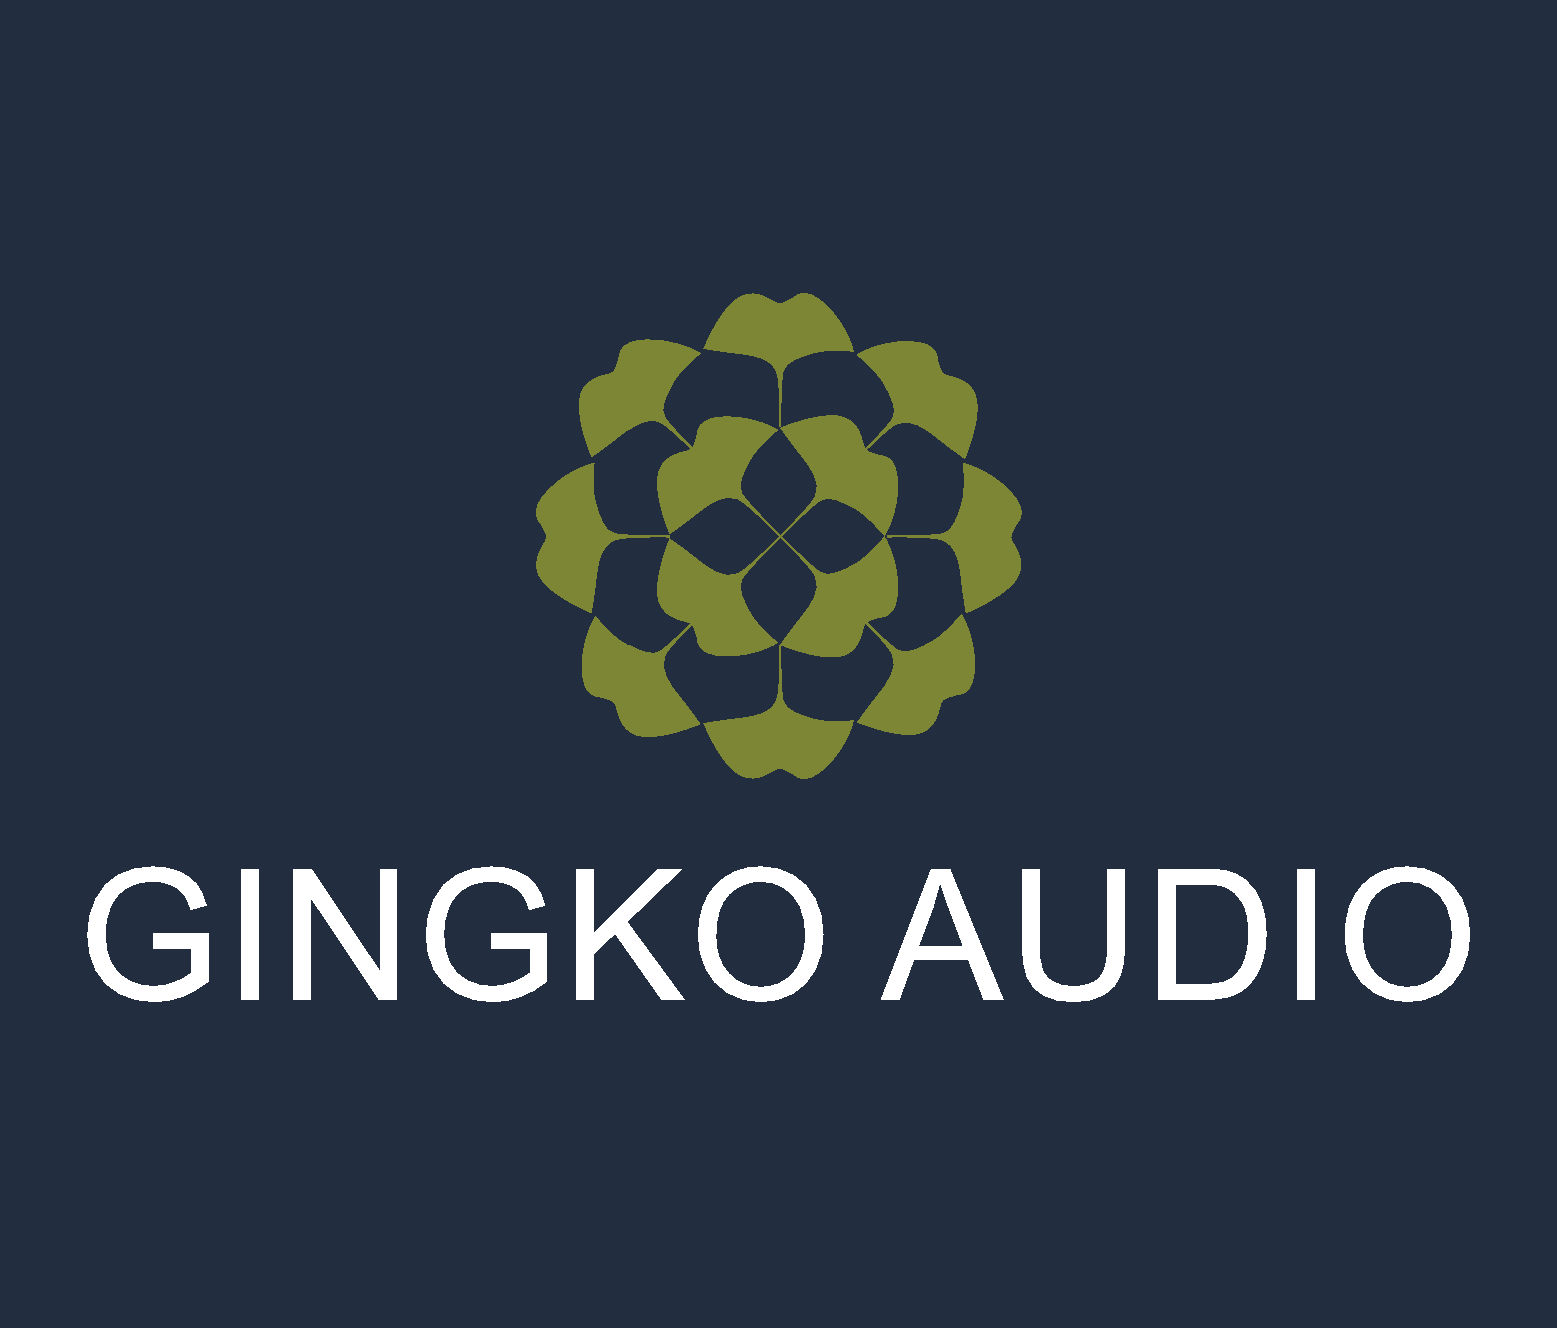 Gingko Audio